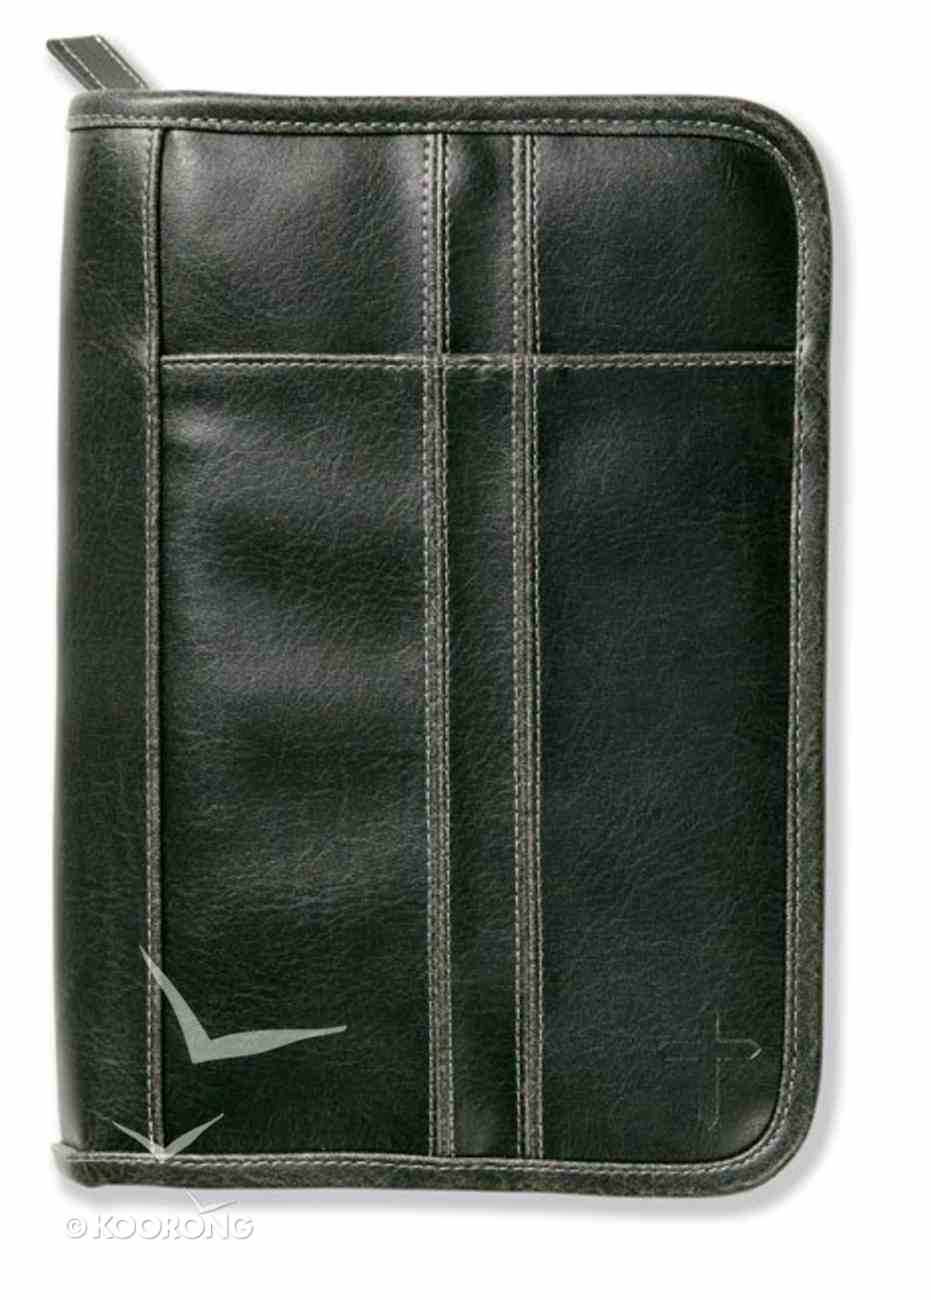 Bible Cover Distressed Leather-Look Black Extra Large Bible Cover